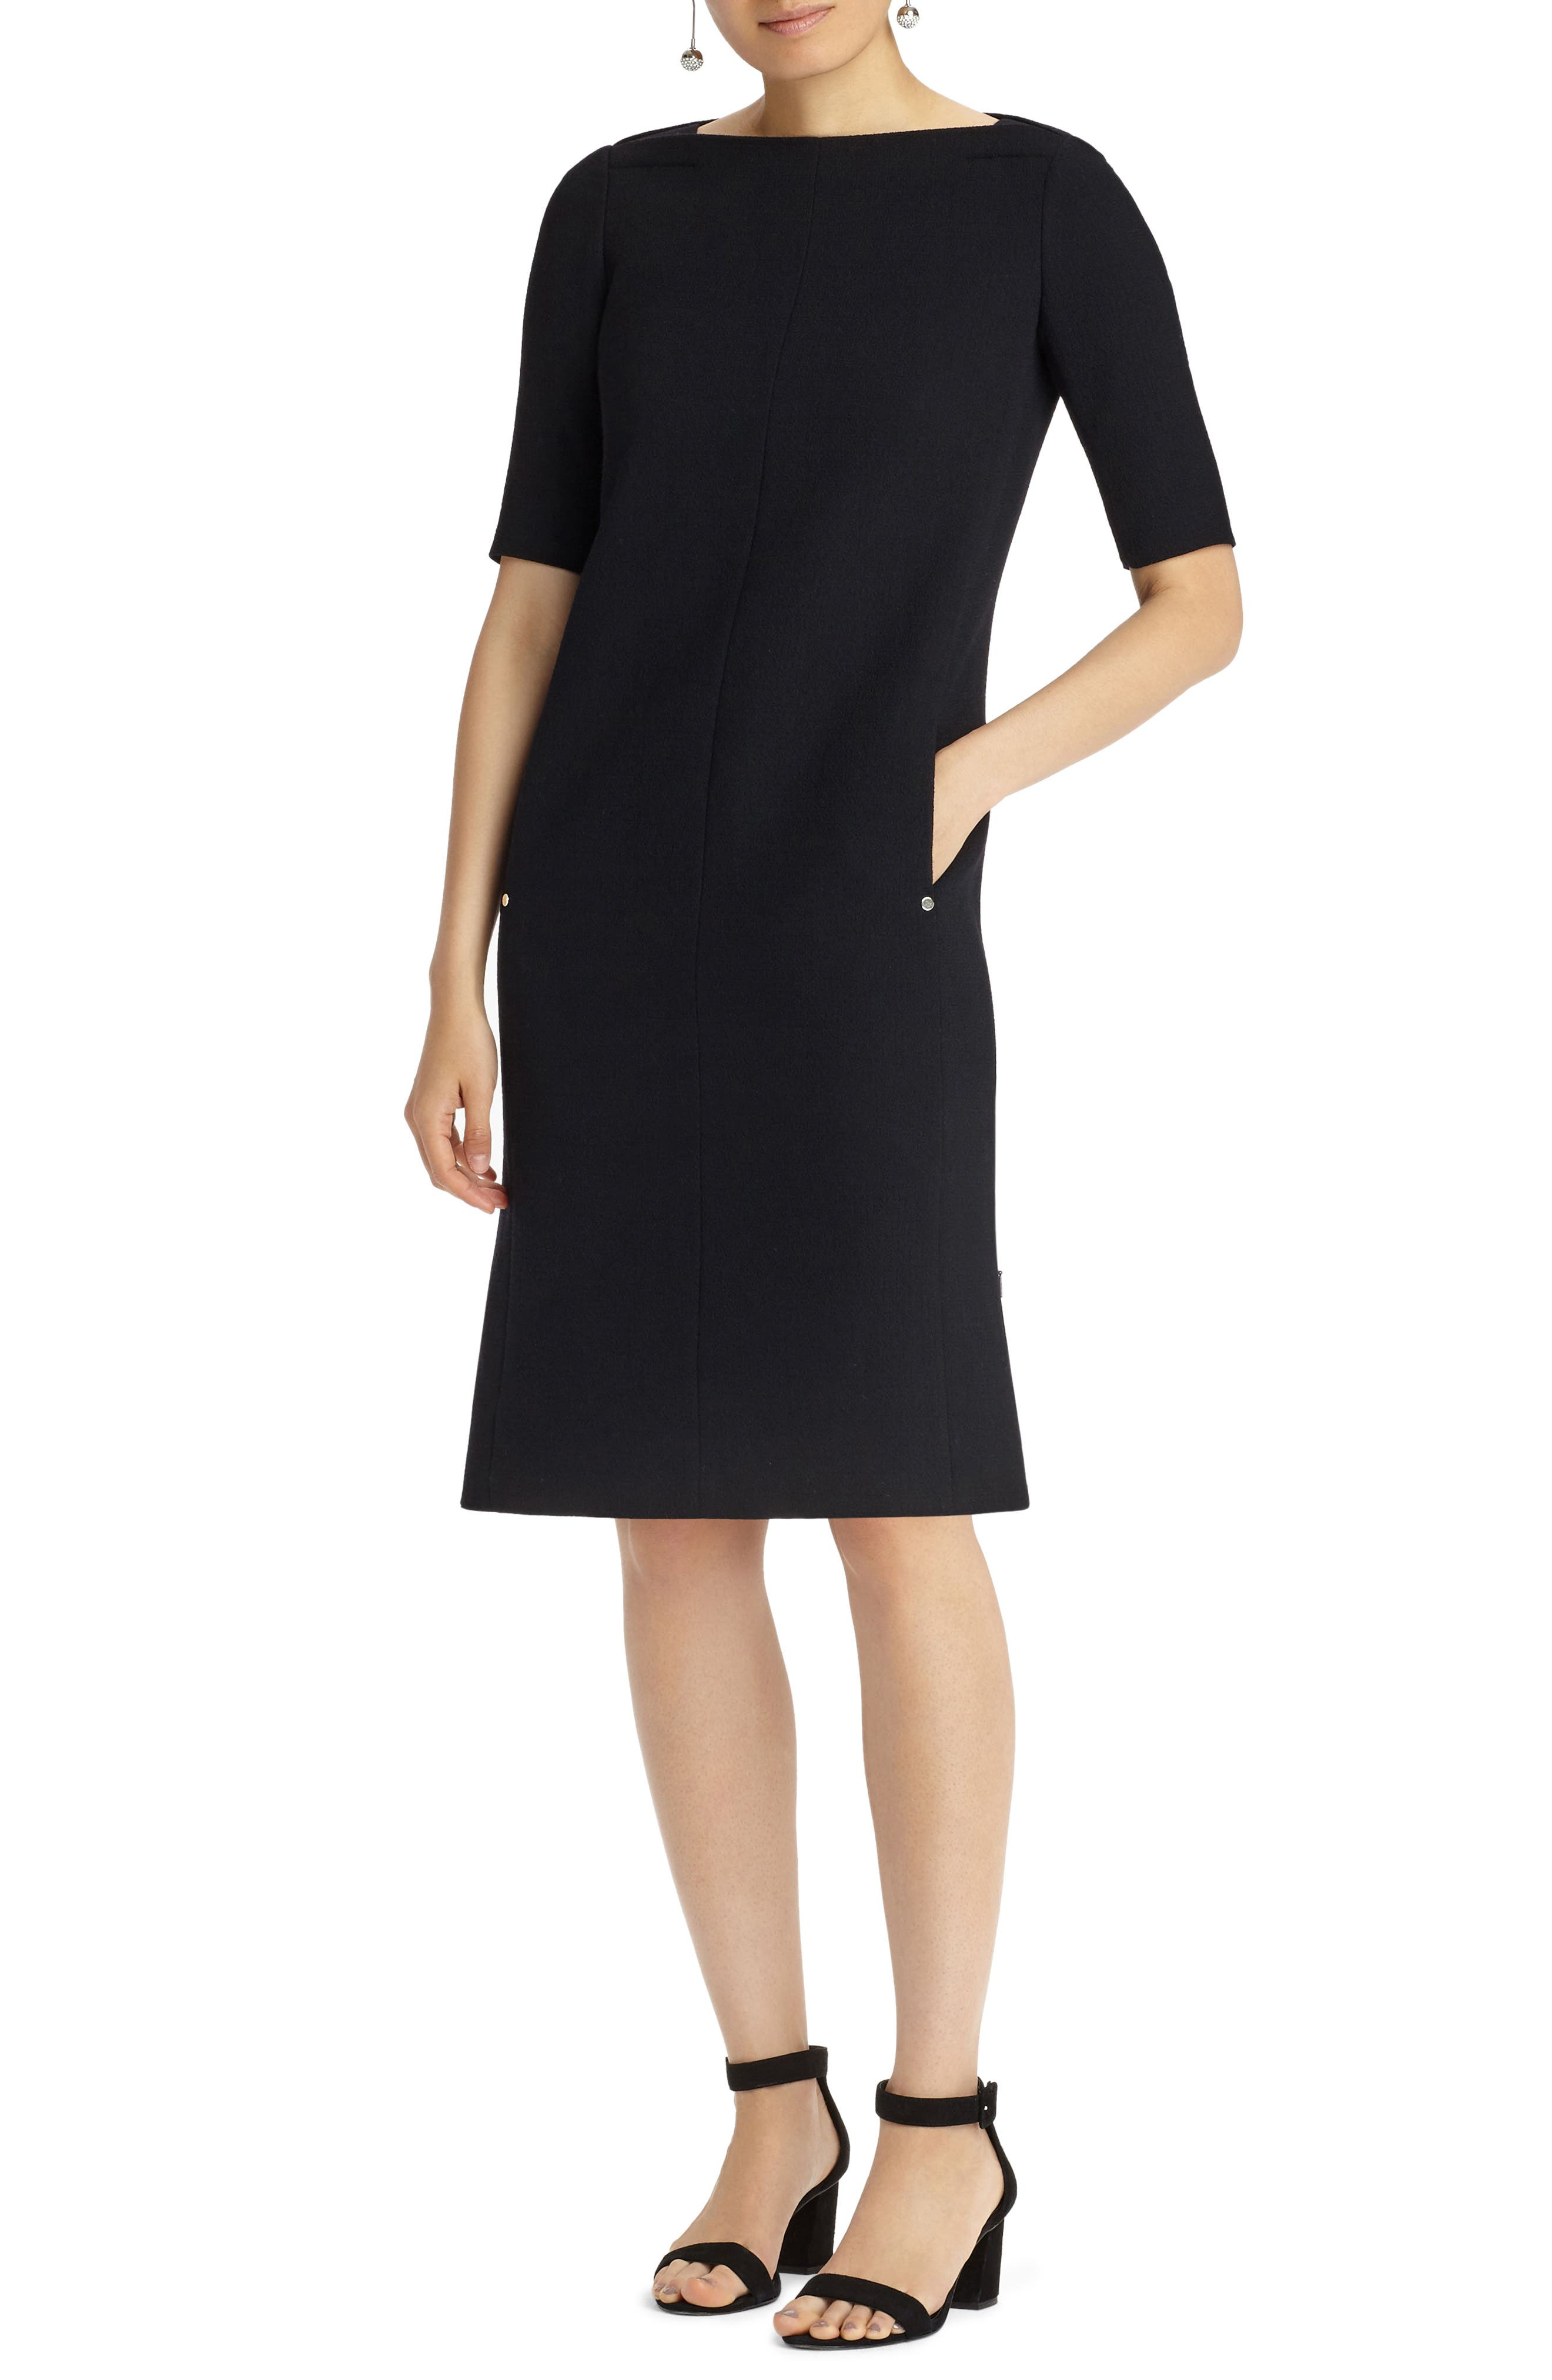 Alternate Image 1 Selected - Lafayette 148 New York Cyra Shift Dress (Nordstrom Exclusive)